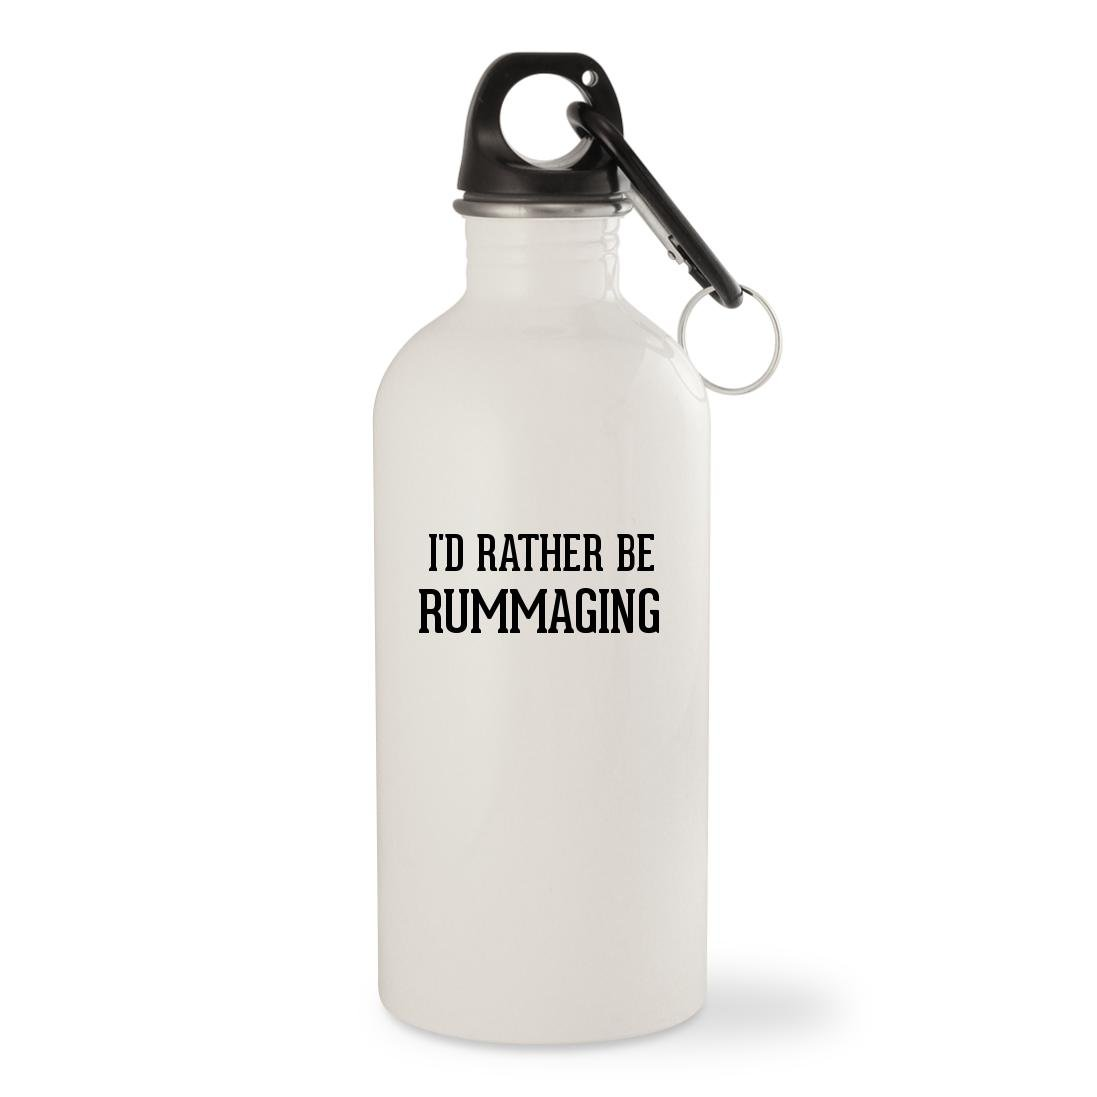 I'd Rather Be RUMMAGING - White 20oz Stainless Steel Water Bottle with Carabiner